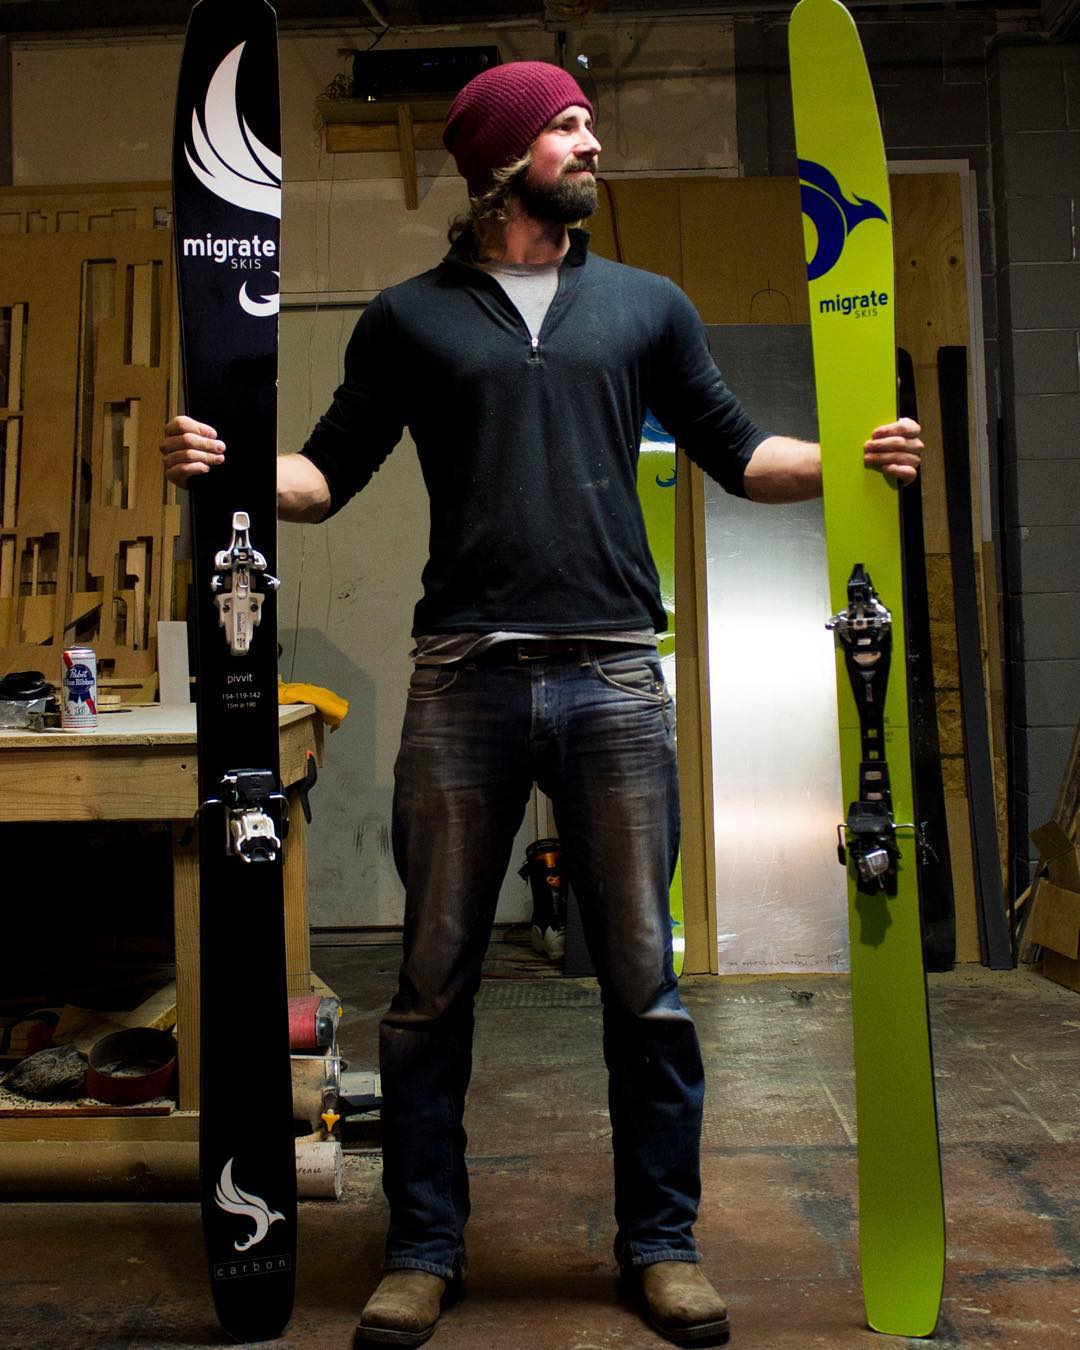 Carbon fiber skis made right here in our Denver shop!  Our flagship ski is the yellow Plunge and only weights 3.5lbs @ 190cm and 108 underfoot. In black is the Pivvit and weighs 4lbs @ 190cm and 119 underfoot!! All our skis come with a 3 year warranty!...